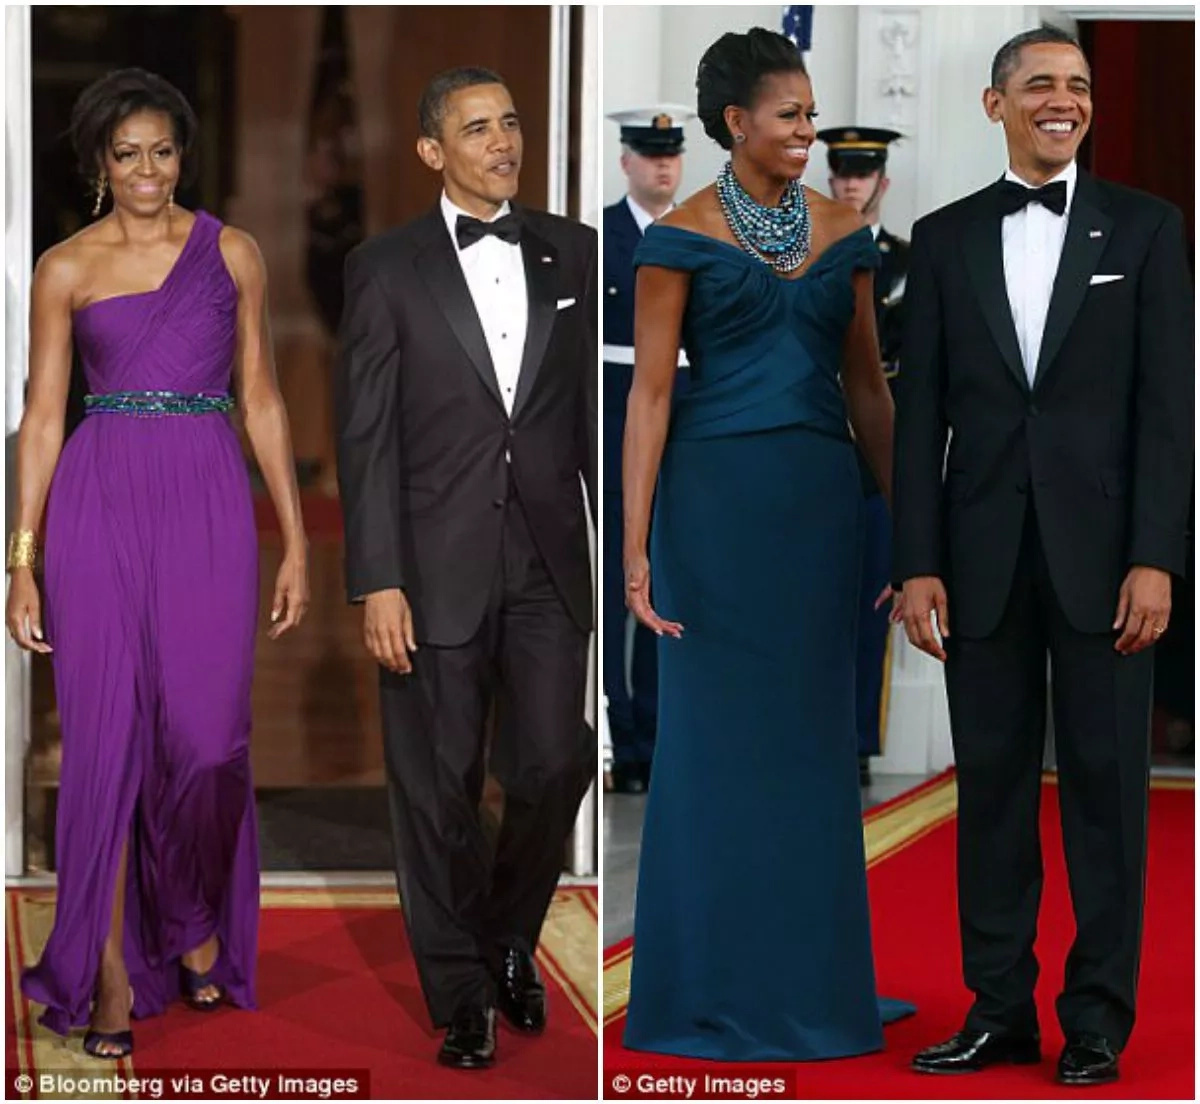 Michelle said Obama often teased her about how long it took her to choose a dress for state dinners